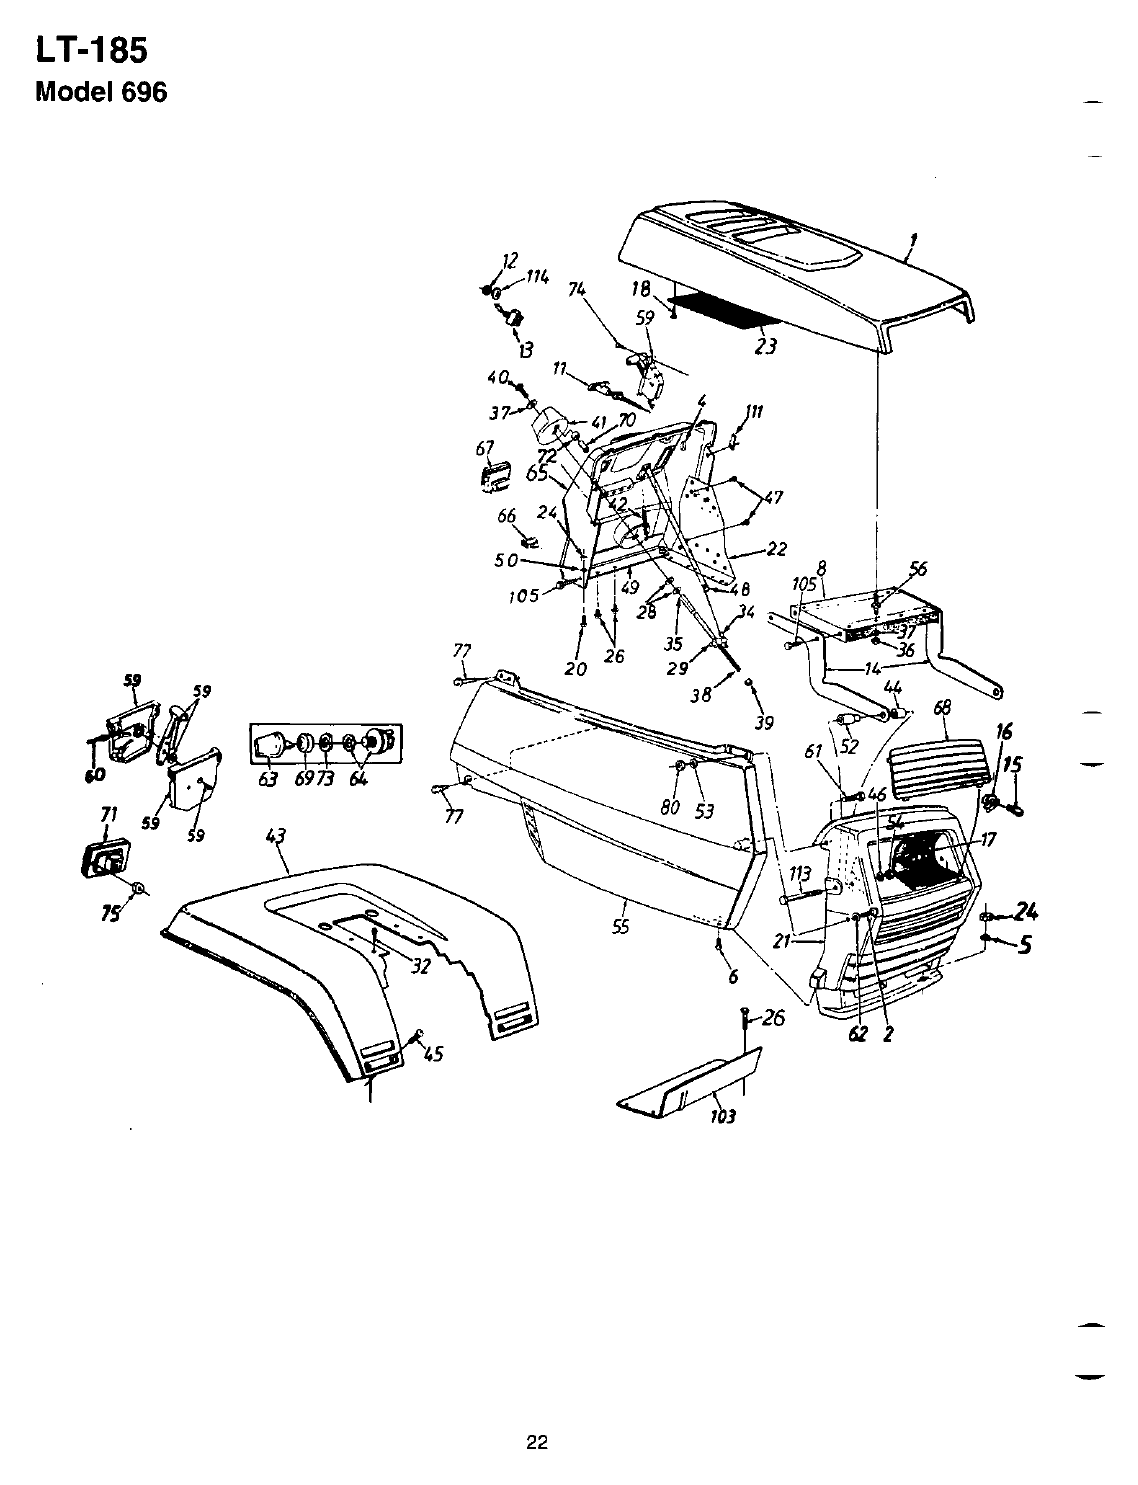 Page 22 of Bolens Lawn Mower LT-185 User Guide